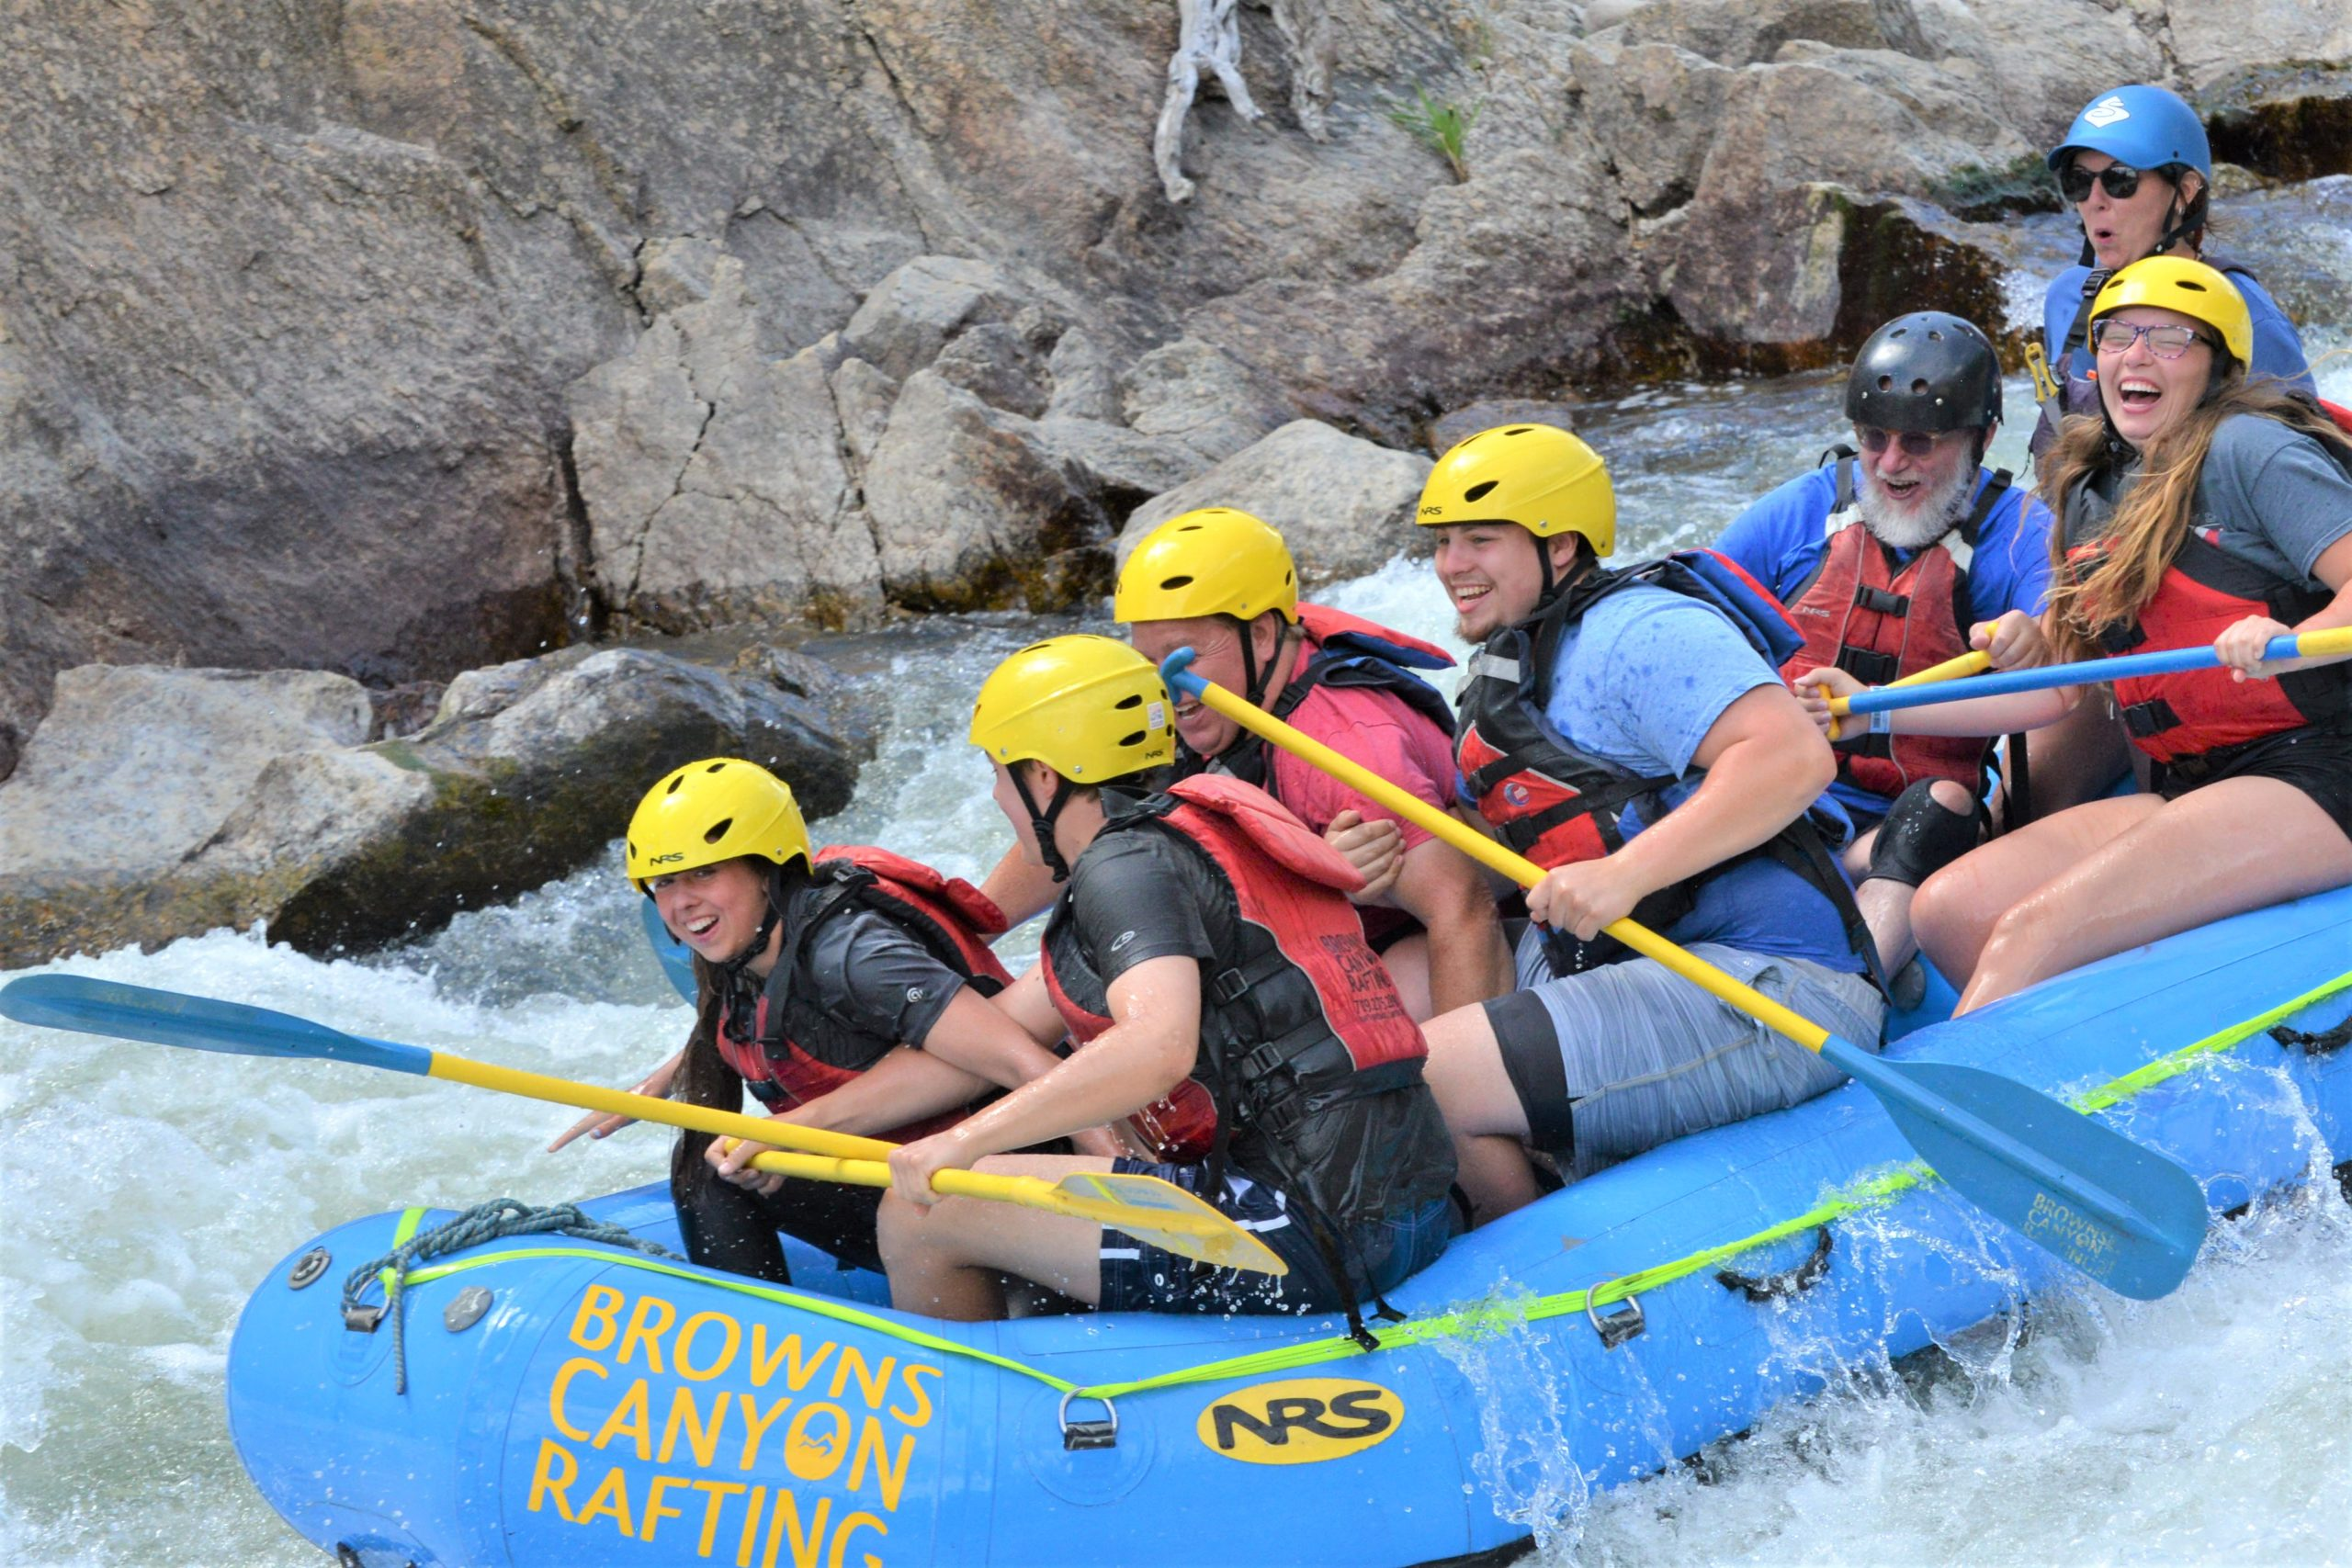 Arkansas River rafting Buena Vista Colorado